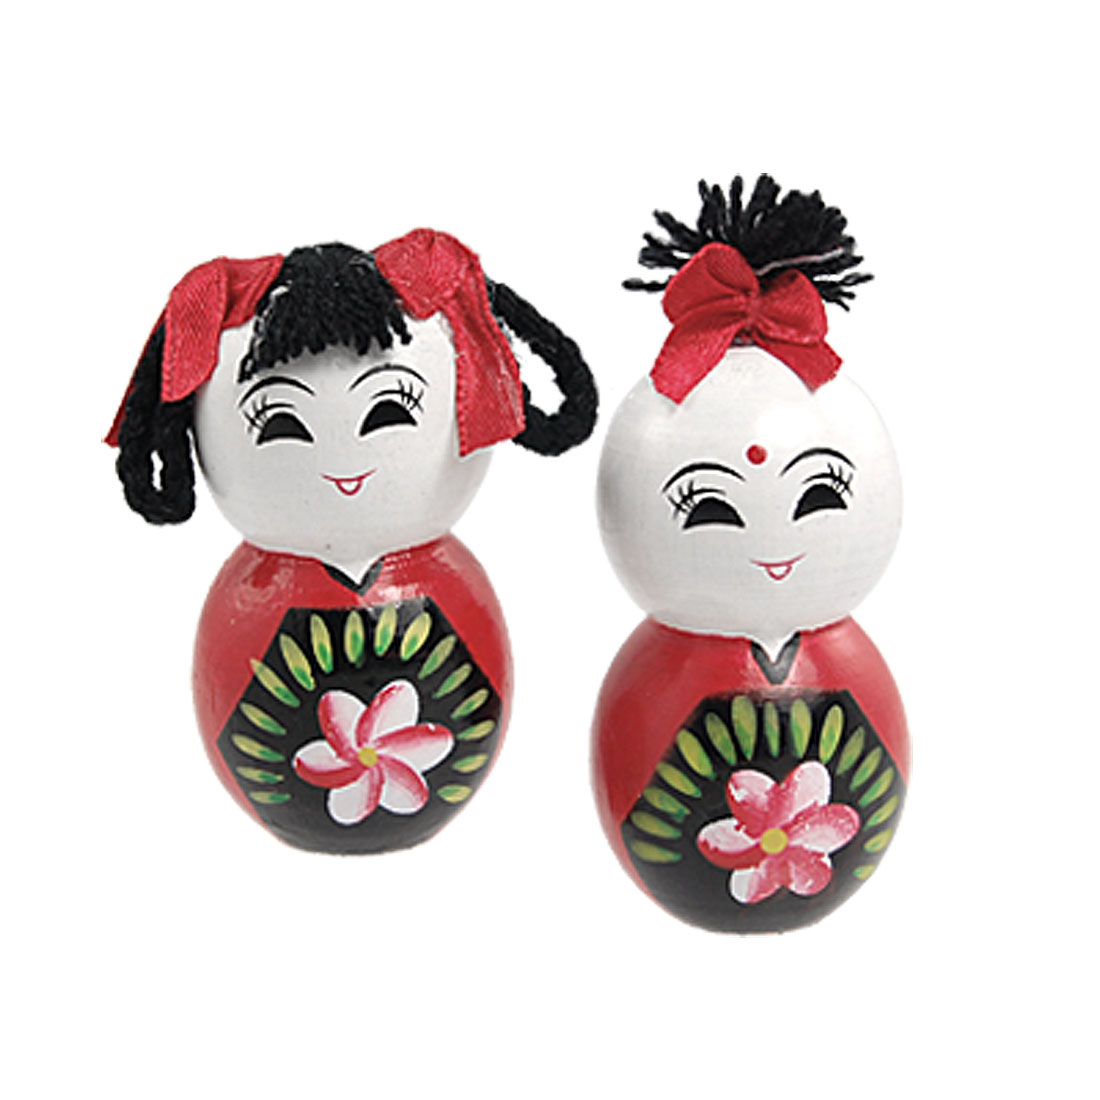 Chinese Fuwa Traditional Wooden Handicraft Smiling Couples Doll